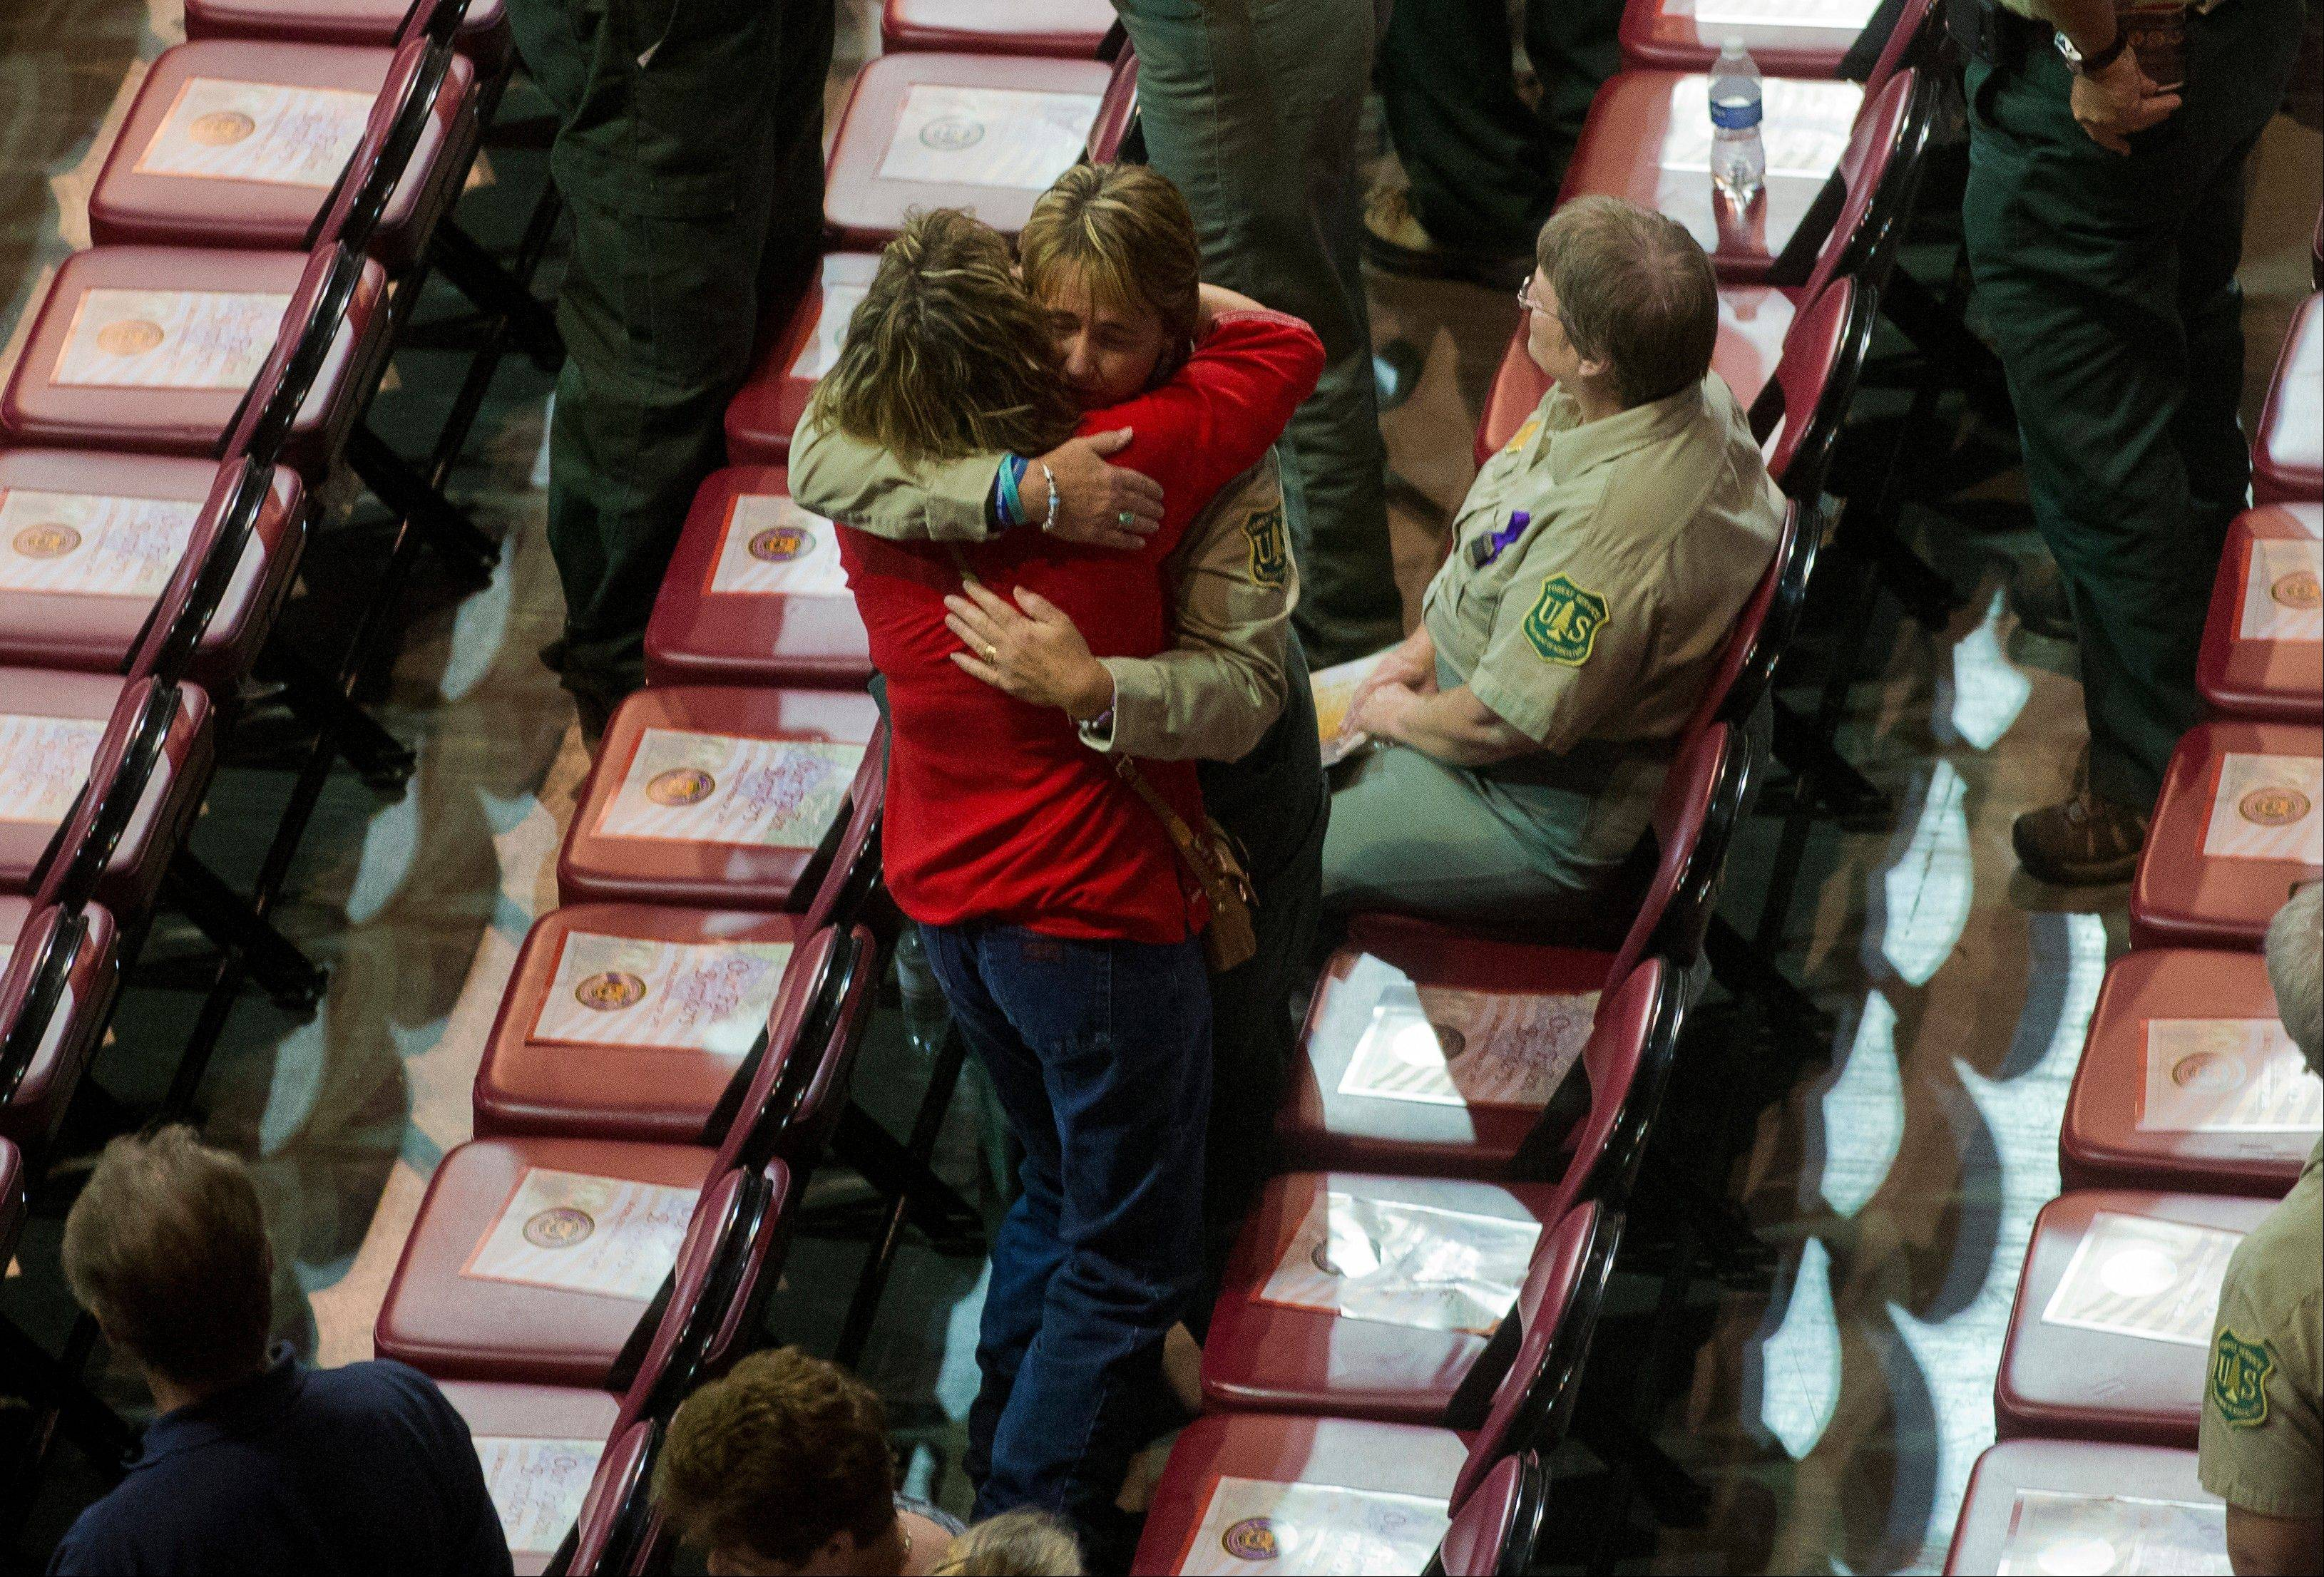 A Prescott National Forrest worker gets a hug from an unidentified woman before a memorial service for the 19 fallen firefighters at Tim's Toyota Center in Prescott Valley, Ariz. on Tuesday, July 9, 2013.